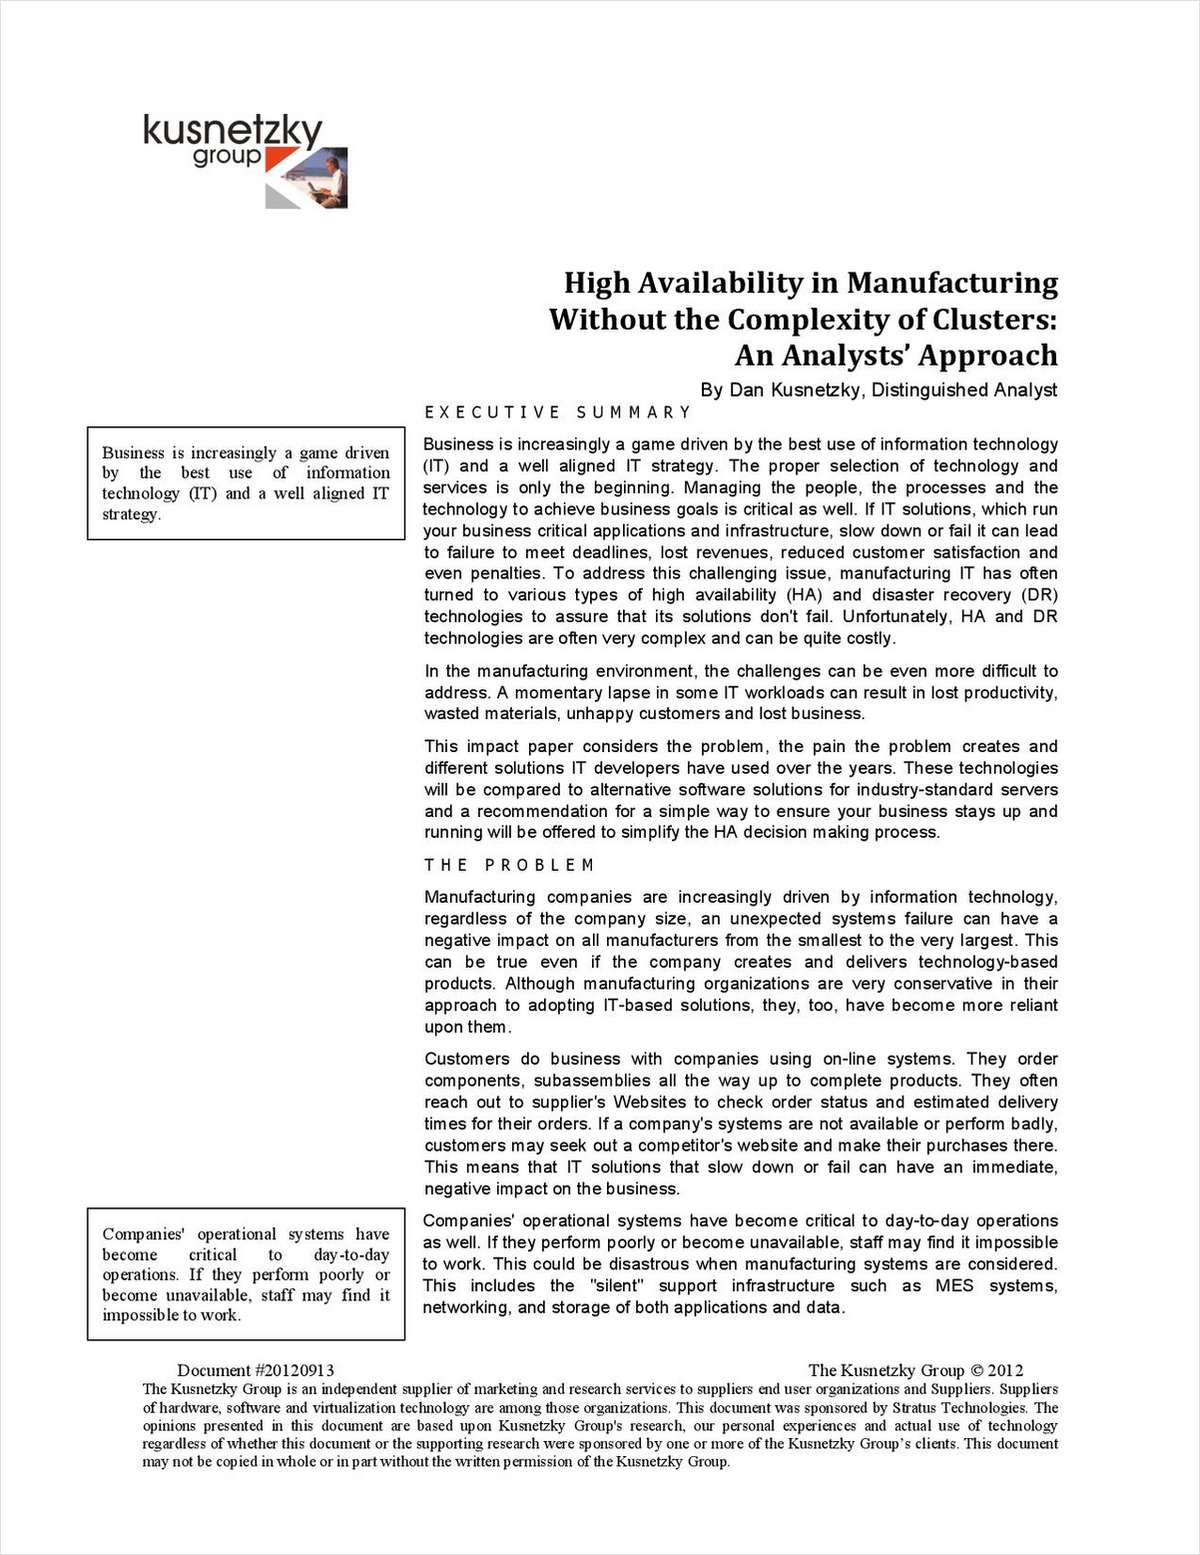 High Availability Without the Complexity of Clusters: An Analysts' Approach